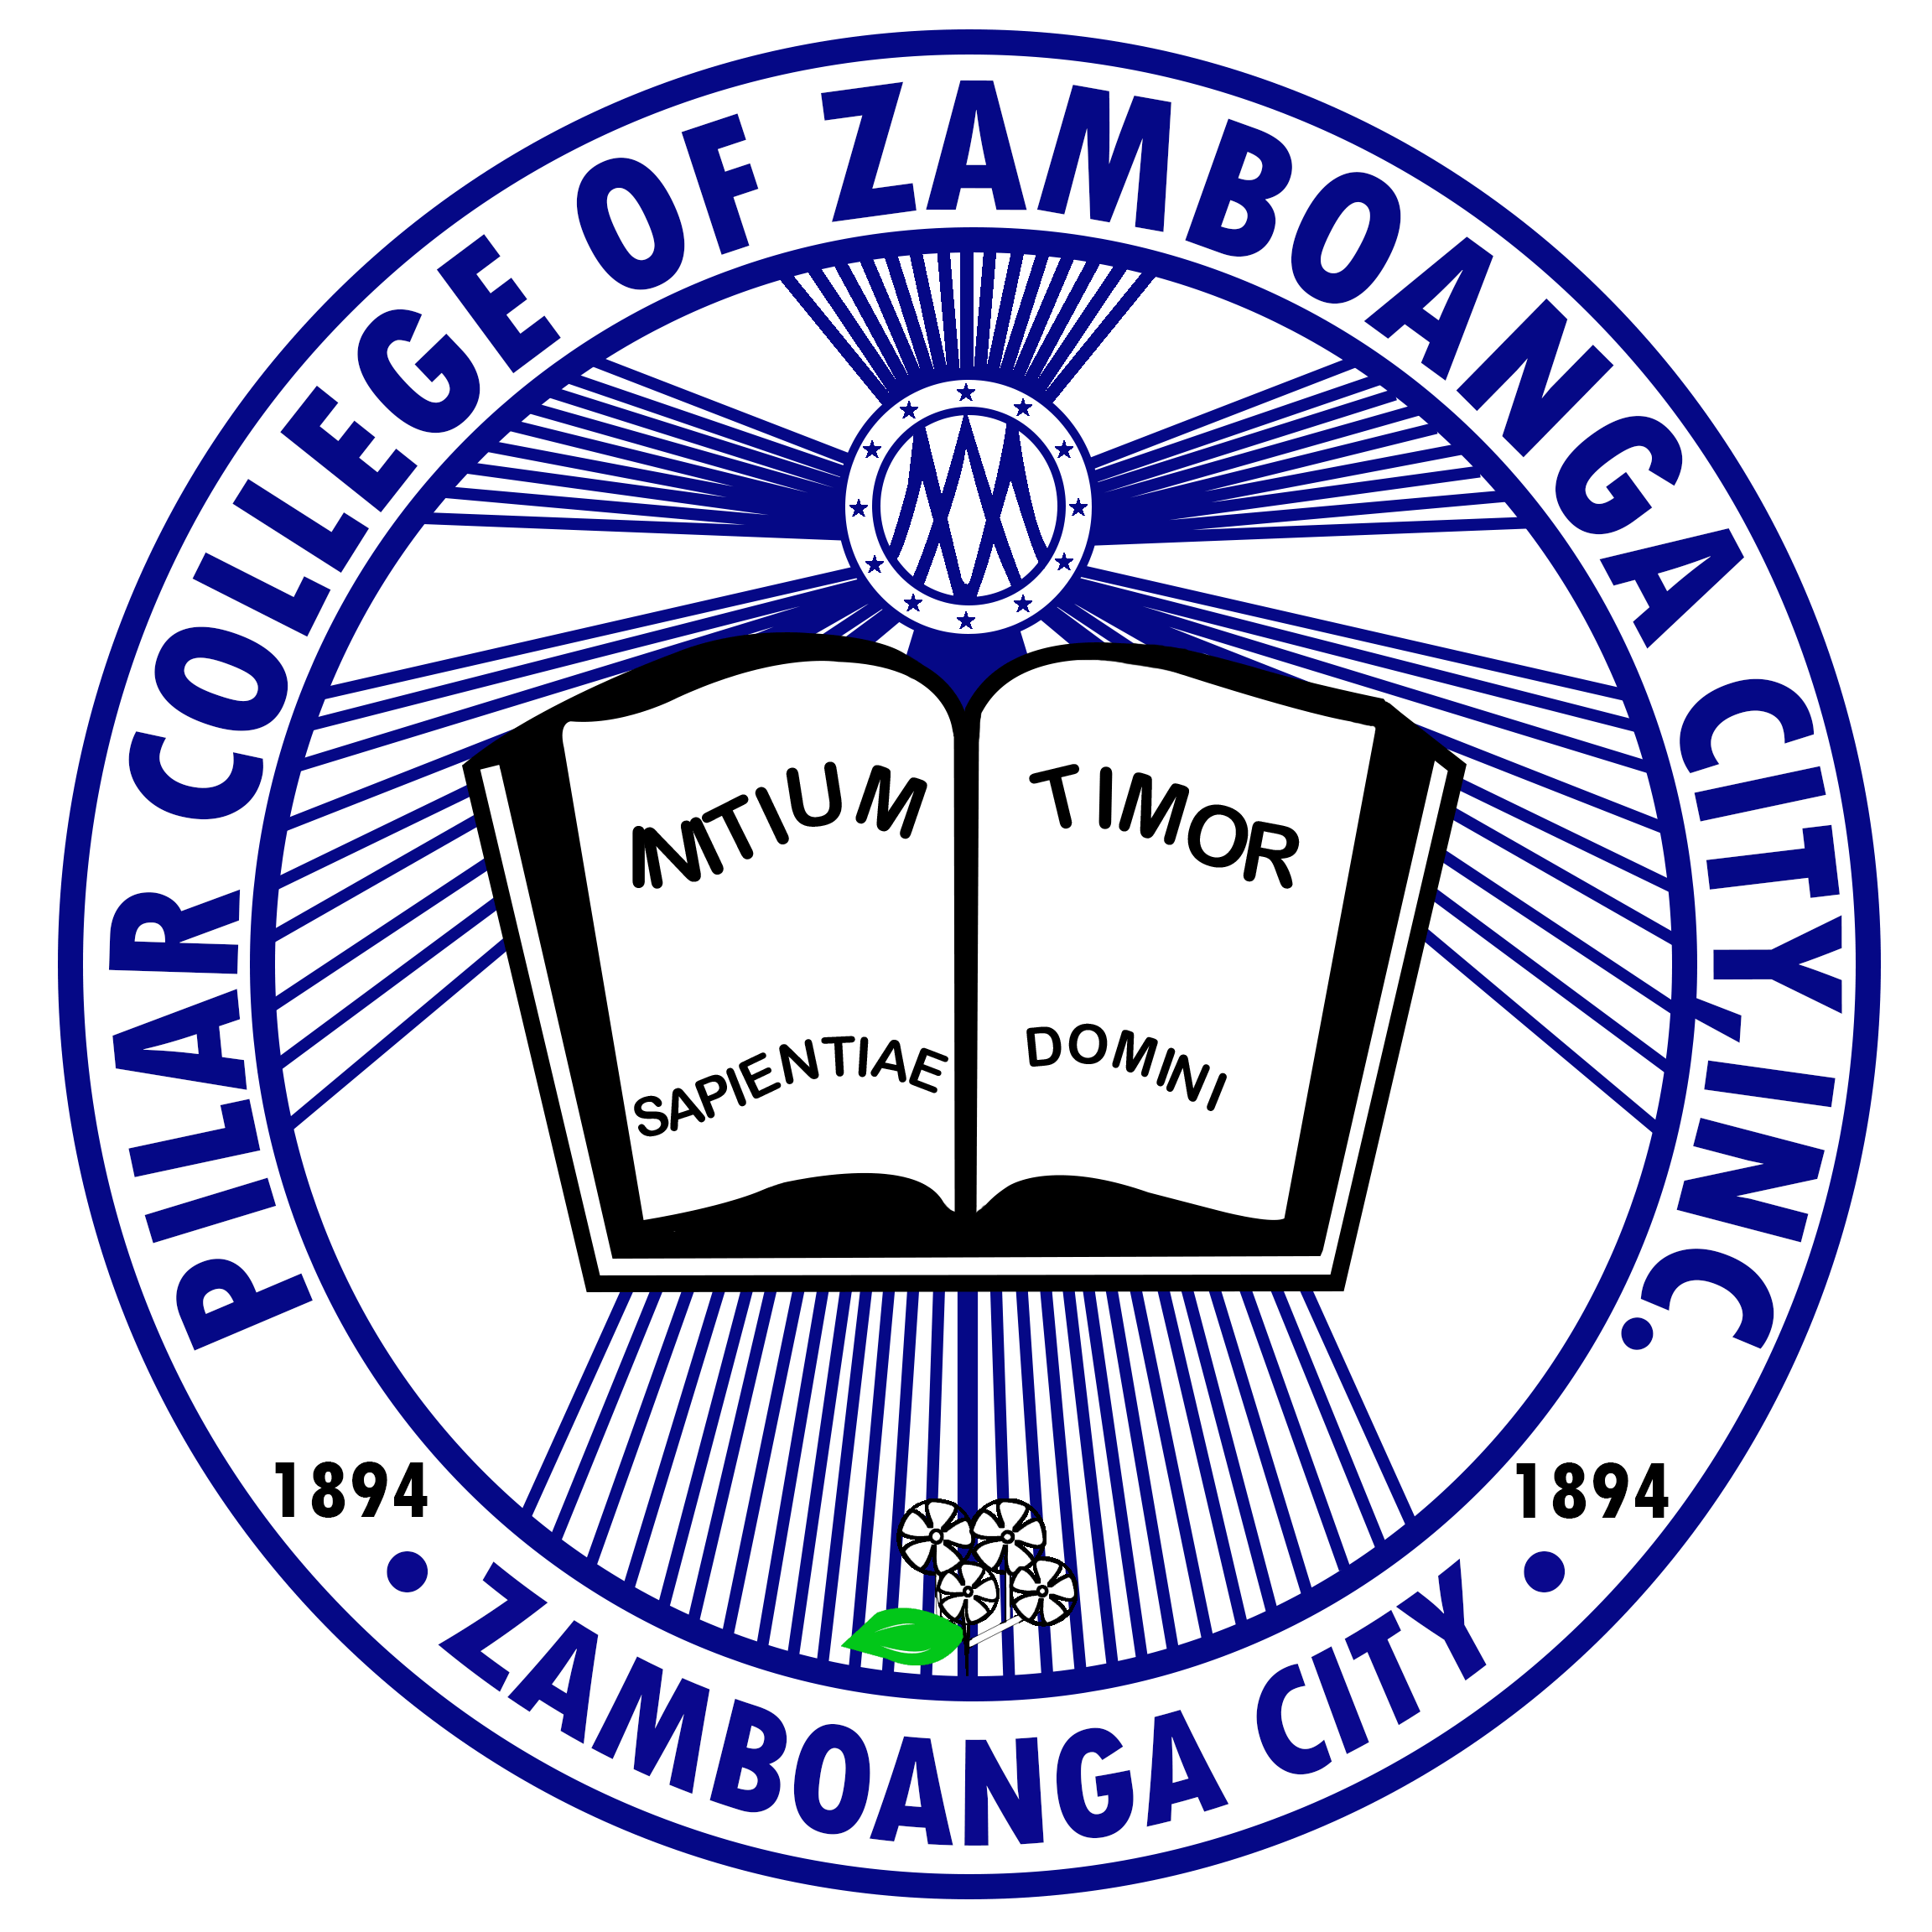 Pilar College of Zamboanga City Inc. Logo